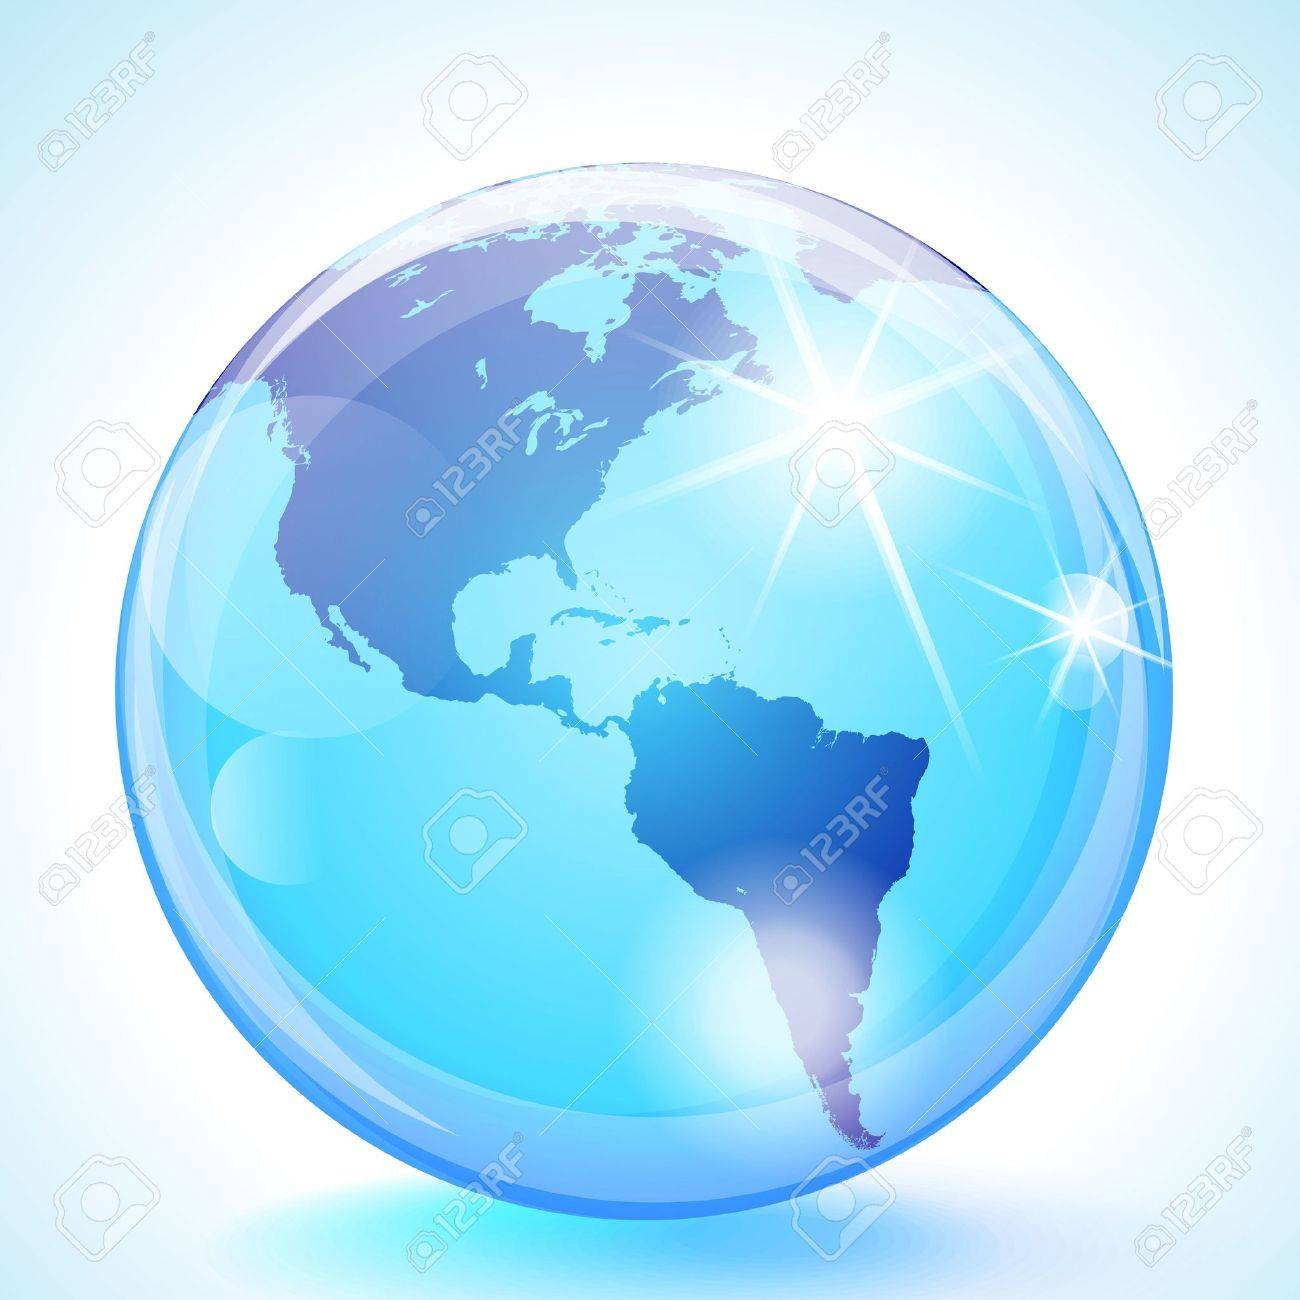 Blue marble globe showing the Pacific Ocean, the Americas and the Atlantic Ocean. Stock Vector - 13109448